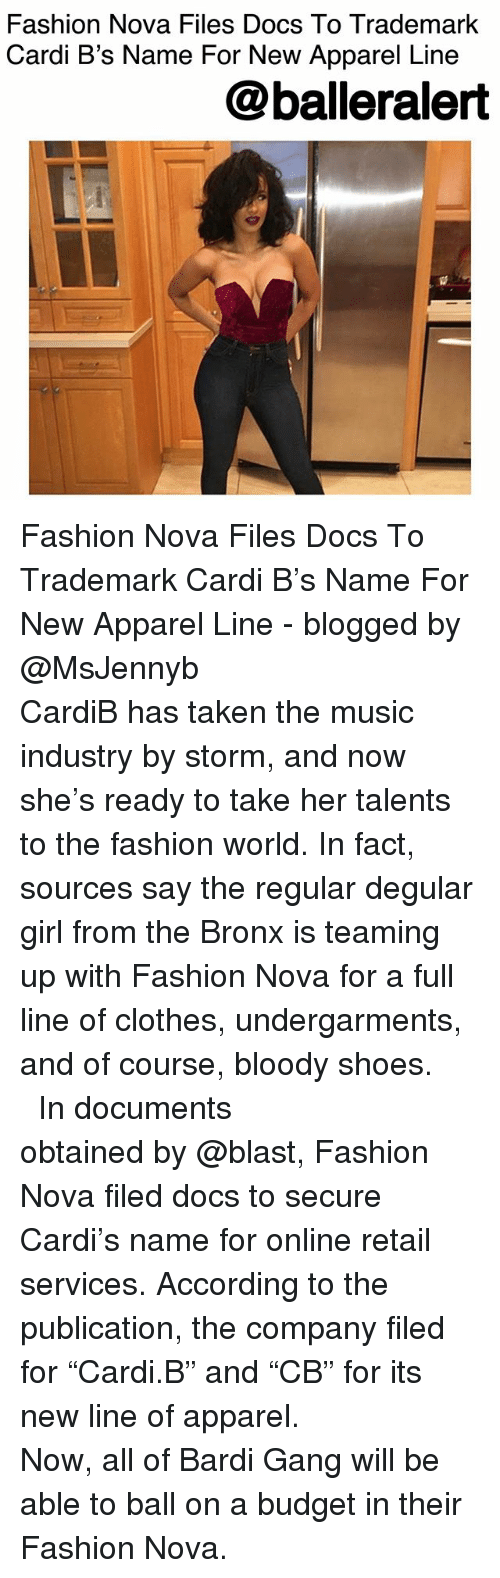 """Apparel: Fashion Nova Files Docs To Trademark  Cardi B's Name For New Apparel Line  @balleralert Fashion Nova Files Docs To Trademark Cardi B's Name For New Apparel Line - blogged by @MsJennyb ⠀⠀⠀⠀⠀⠀⠀⠀⠀ ⠀⠀⠀⠀⠀⠀⠀⠀⠀ CardiB has taken the music industry by storm, and now she's ready to take her talents to the fashion world. In fact, sources say the regular degular girl from the Bronx is teaming up with Fashion Nova for a full line of clothes, undergarments, and of course, bloody shoes. ⠀⠀⠀⠀⠀⠀⠀⠀⠀ ⠀⠀⠀⠀⠀⠀⠀⠀⠀ In documents obtained by @blast, Fashion Nova filed docs to secure Cardi's name for online retail services. According to the publication, the company filed for """"Cardi.B"""" and """"CB"""" for its new line of apparel. ⠀⠀⠀⠀⠀⠀⠀⠀⠀ ⠀⠀⠀⠀⠀⠀⠀⠀⠀ Now, all of Bardi Gang will be able to ball on a budget in their Fashion Nova."""